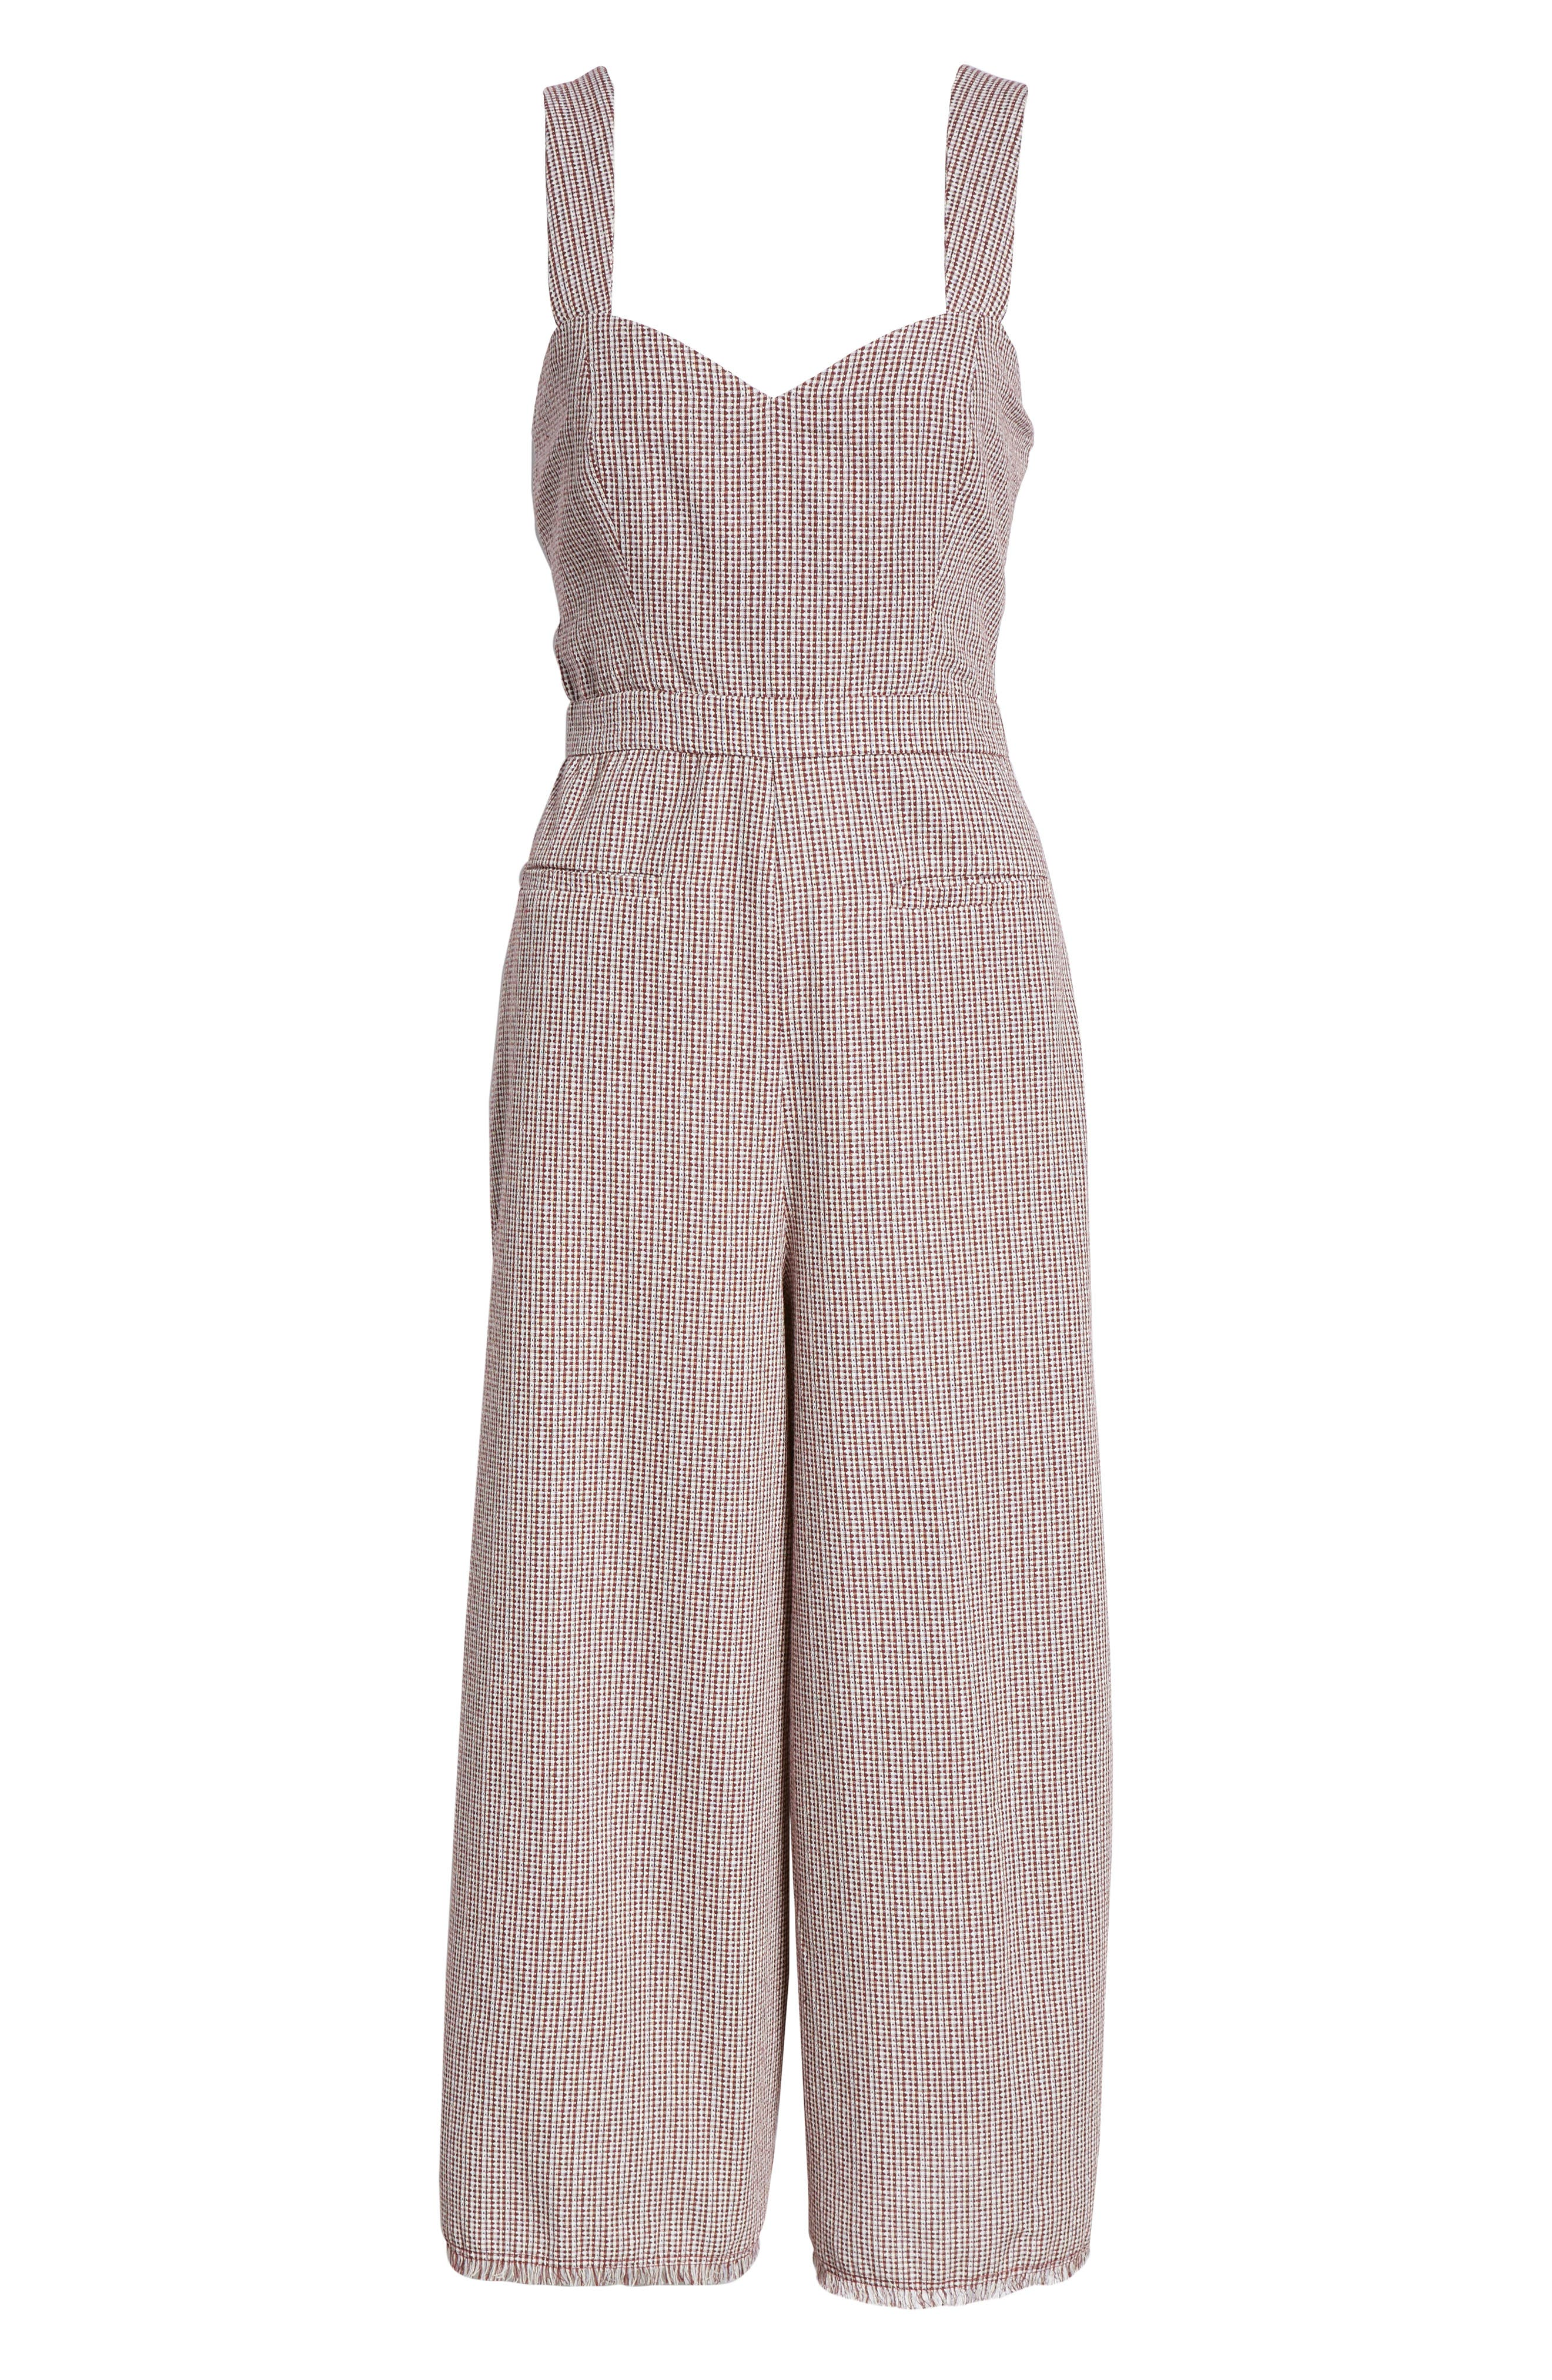 THE EAST ORDER,                             Portia Sleeveless Jumpsuit,                             Alternate thumbnail 7, color,                             934